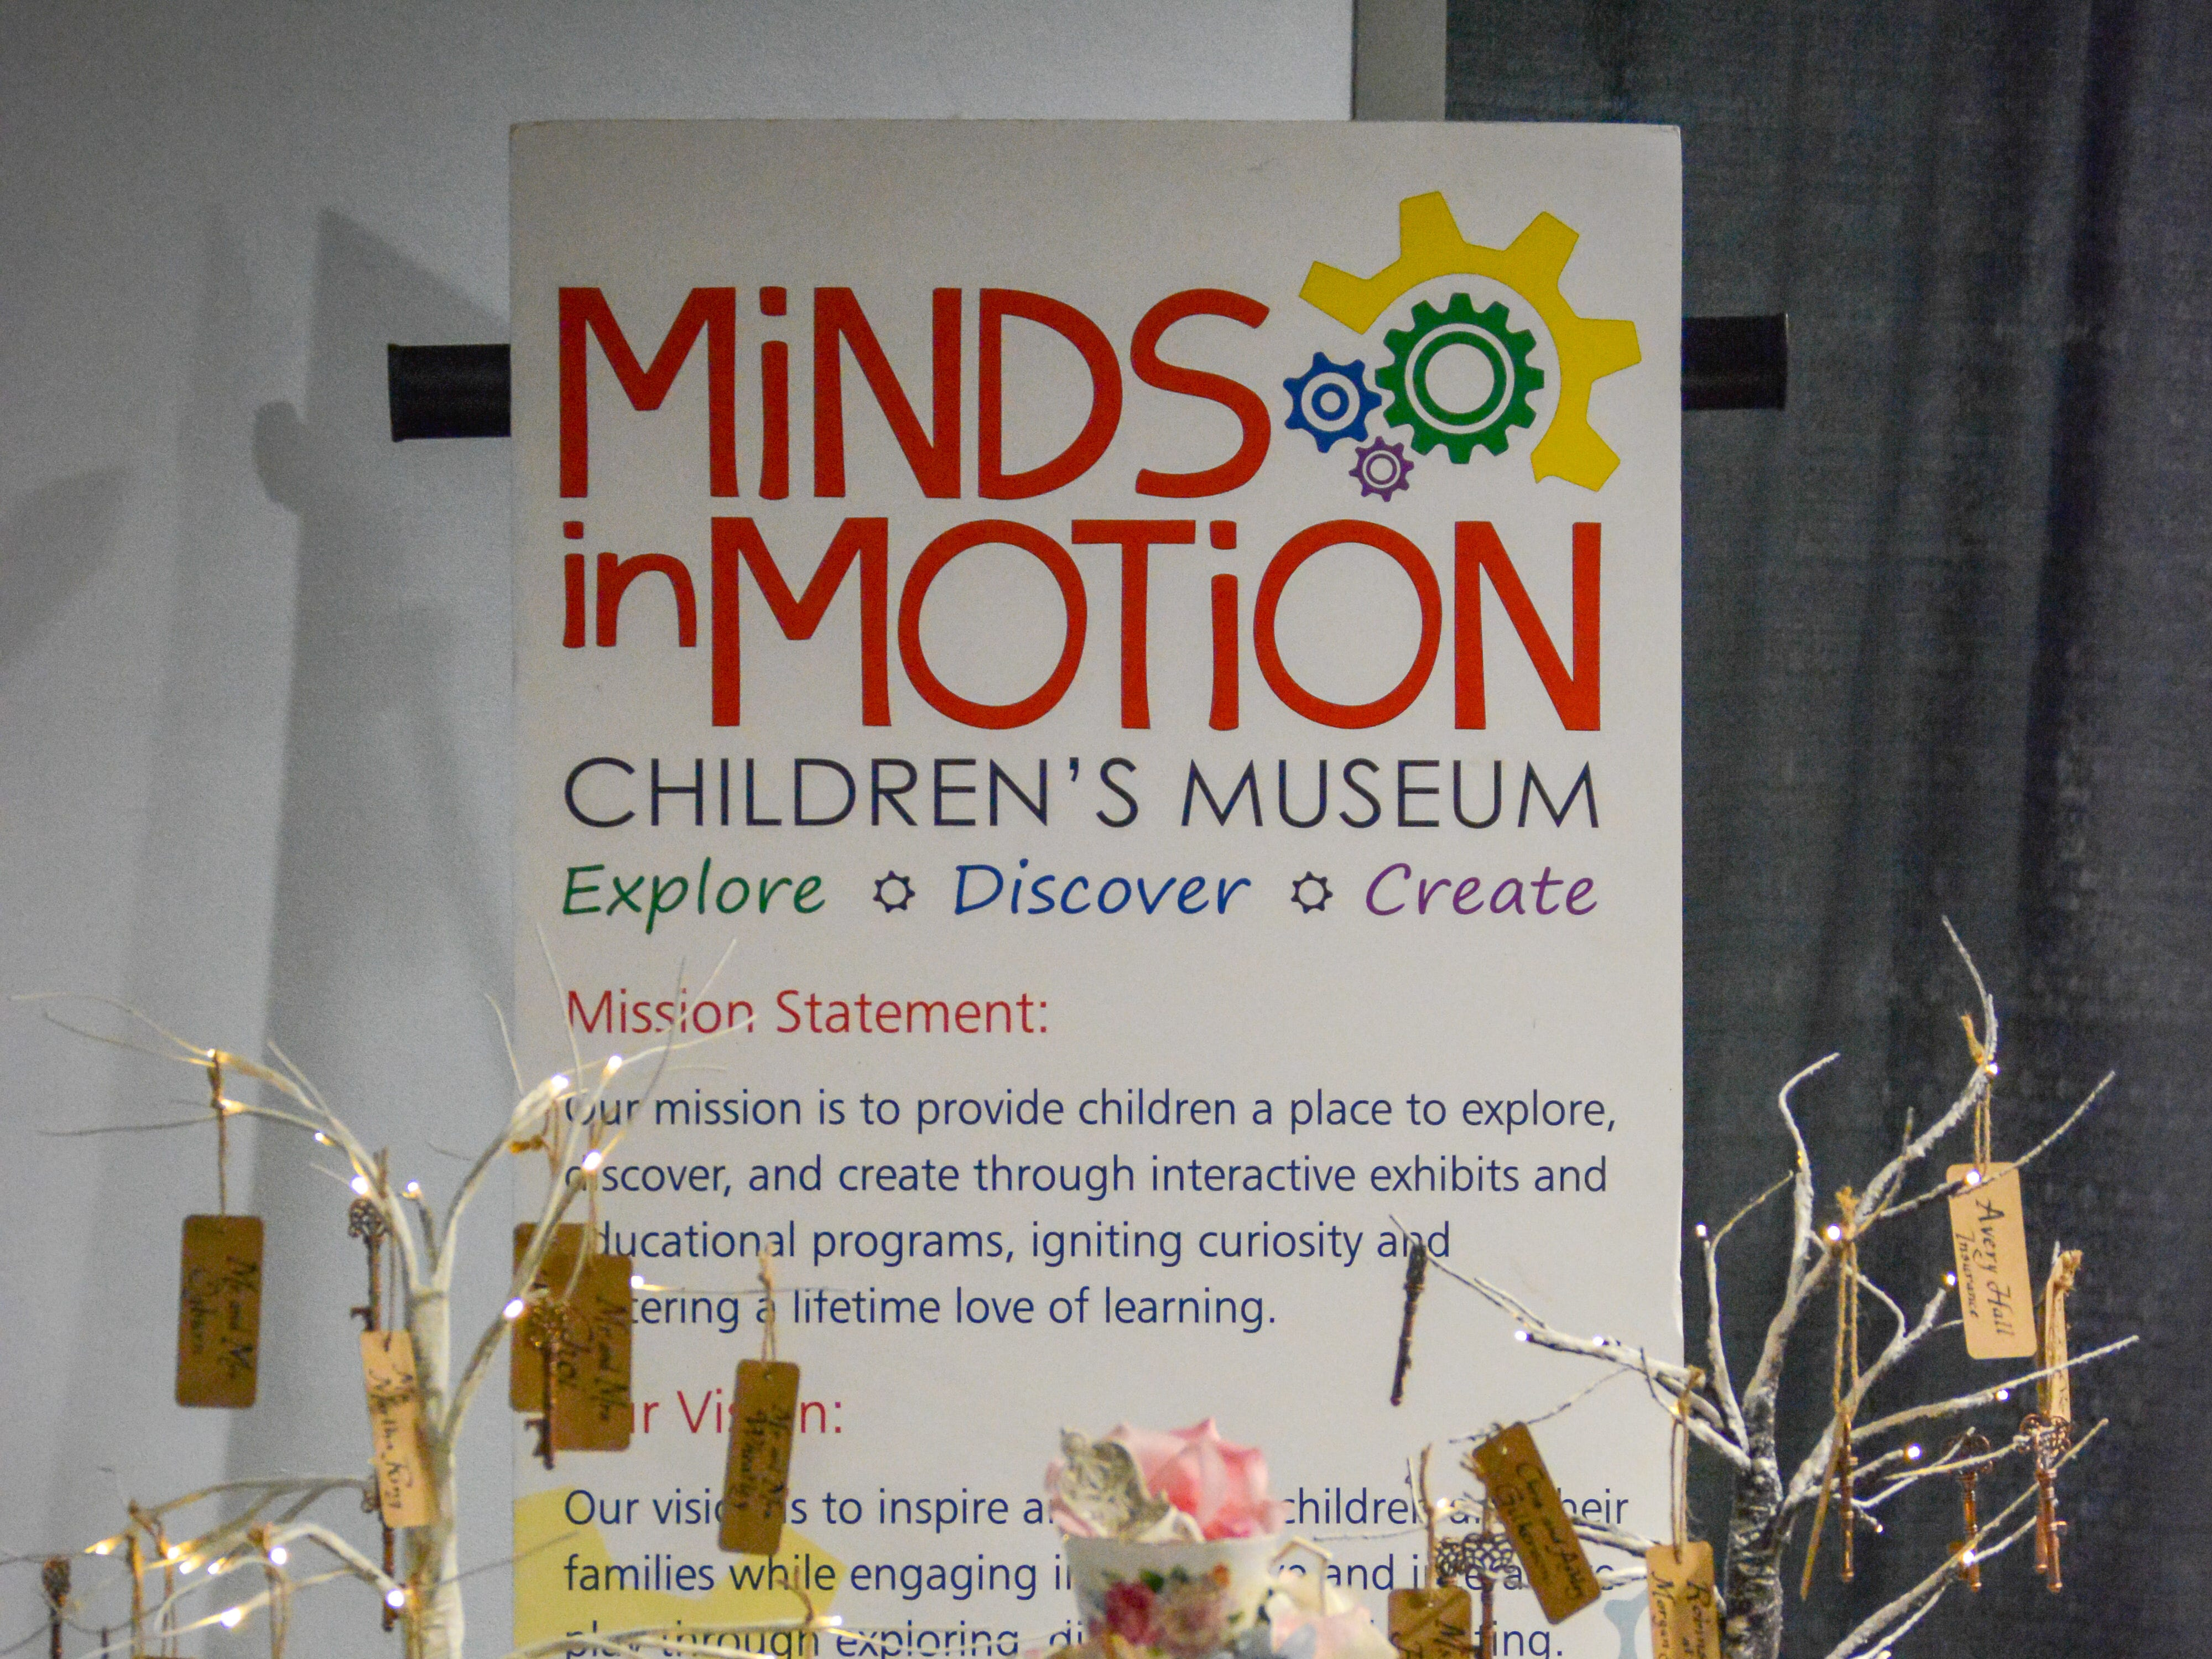 """Minds in Motion """"A Wonderland Adventure"""" Gala materials were displayed at The Wicomico Youth & Civic Center on Nov. 3, 2018 in Salisbury, Maryland."""